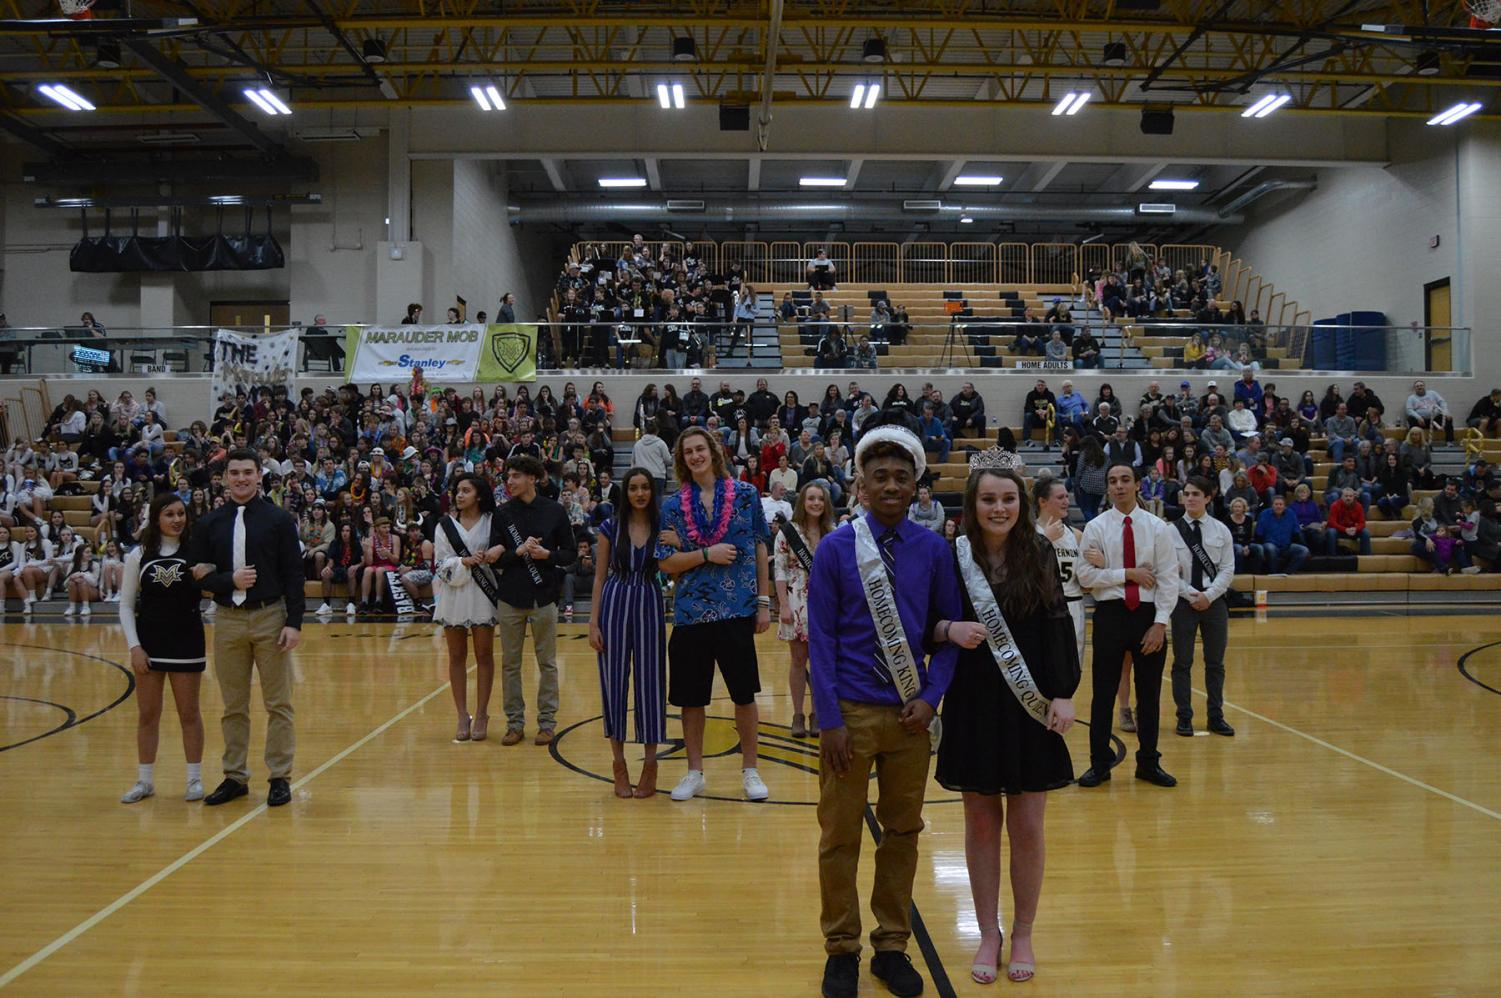 The King and the Queen of basketball homecoming, Darell Jackson and Maeve Laughlin.